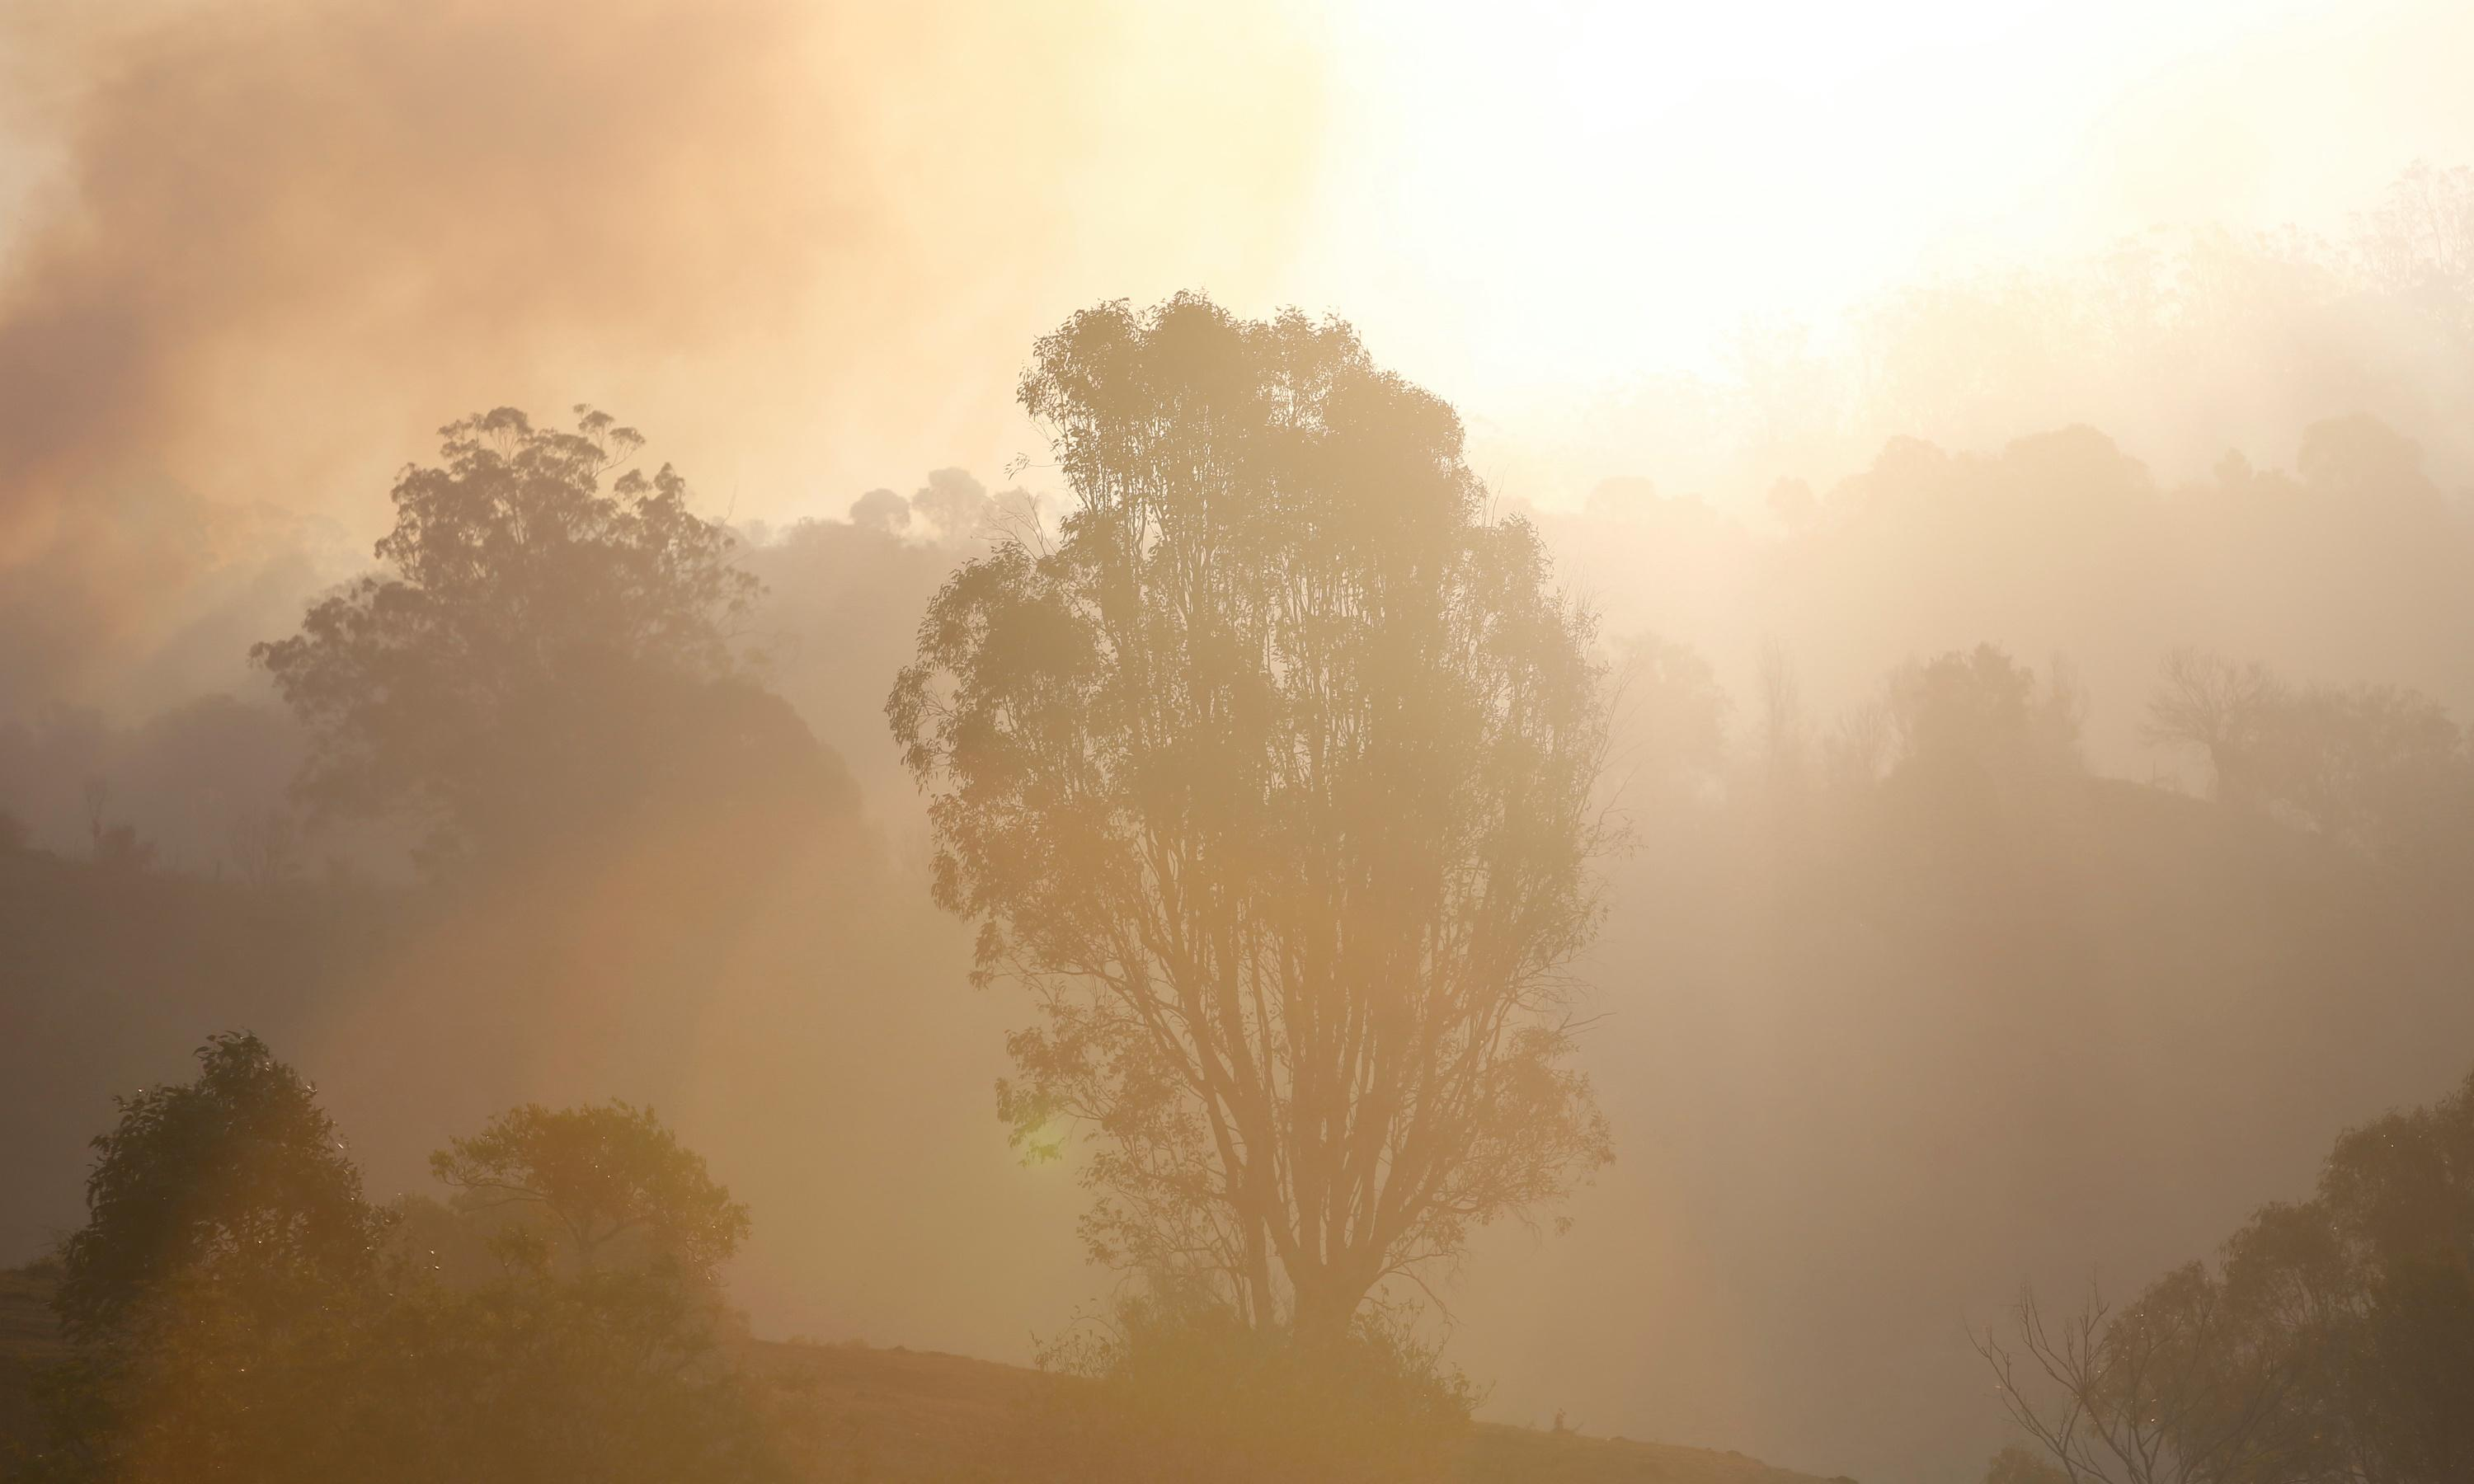 I never thought I'd see the Australian rainforest burning. What will it take for us to wake up to the climate crisis?